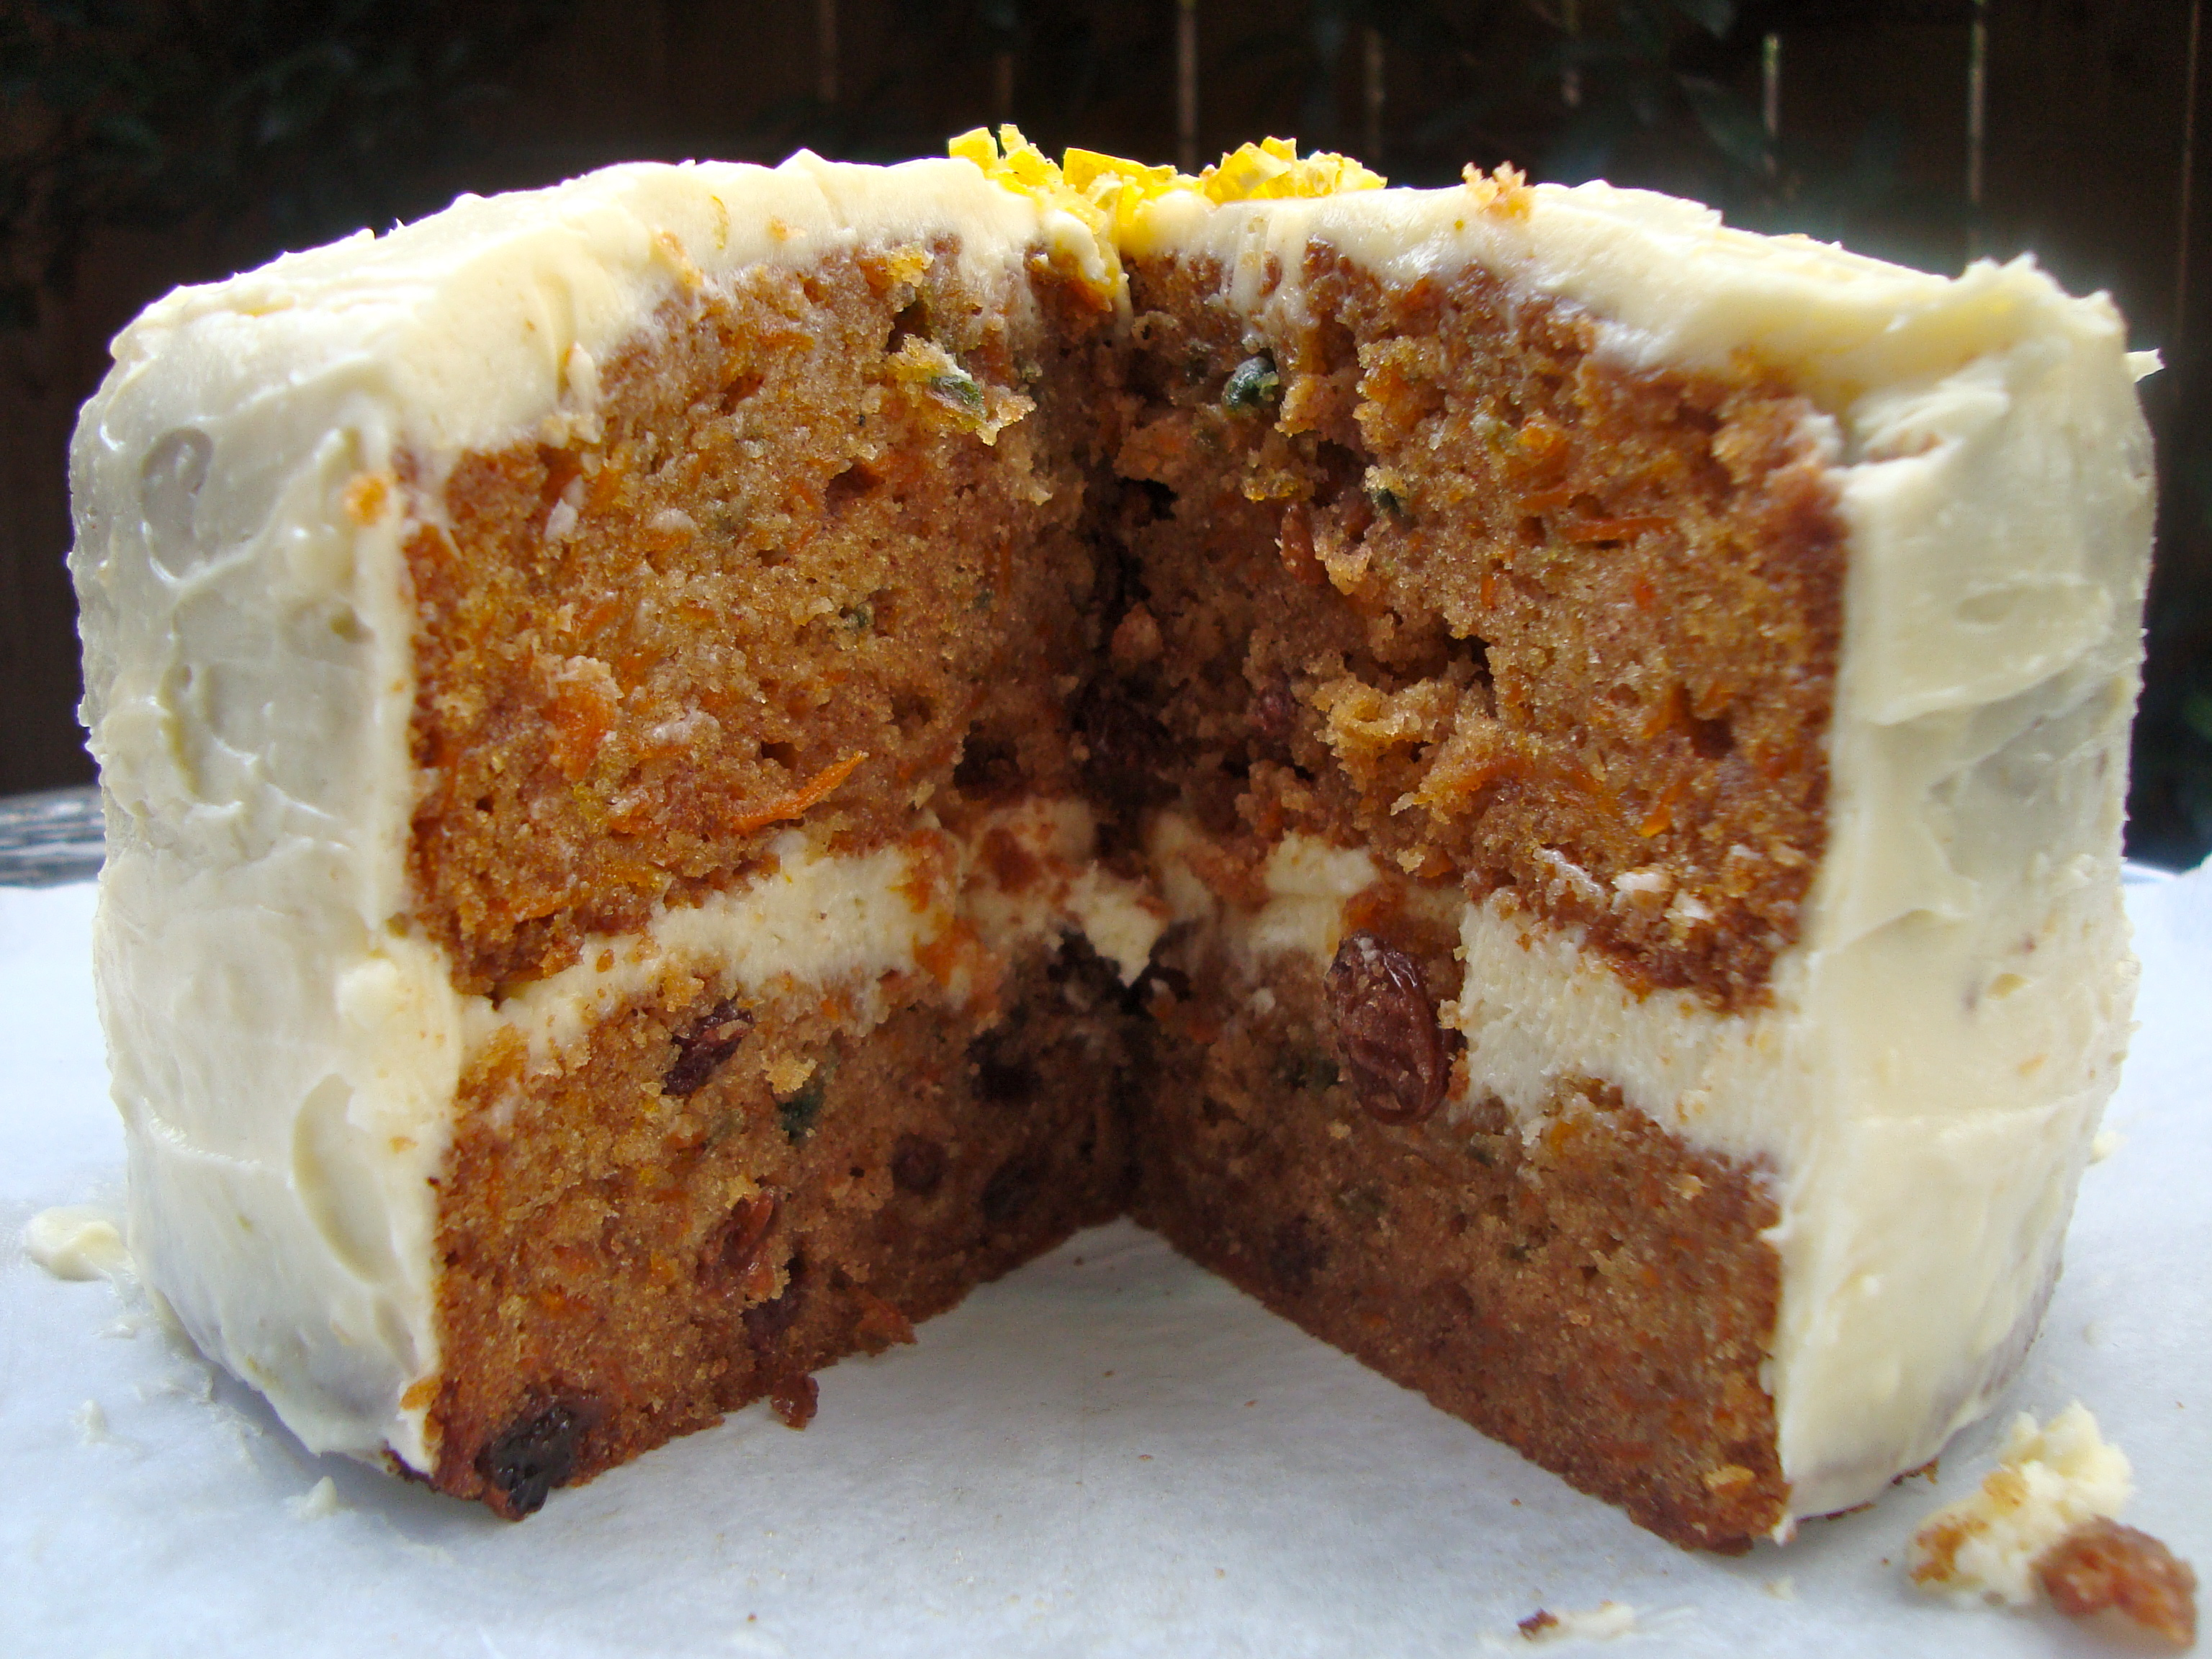 How Do You Make A Good Carrot Cake